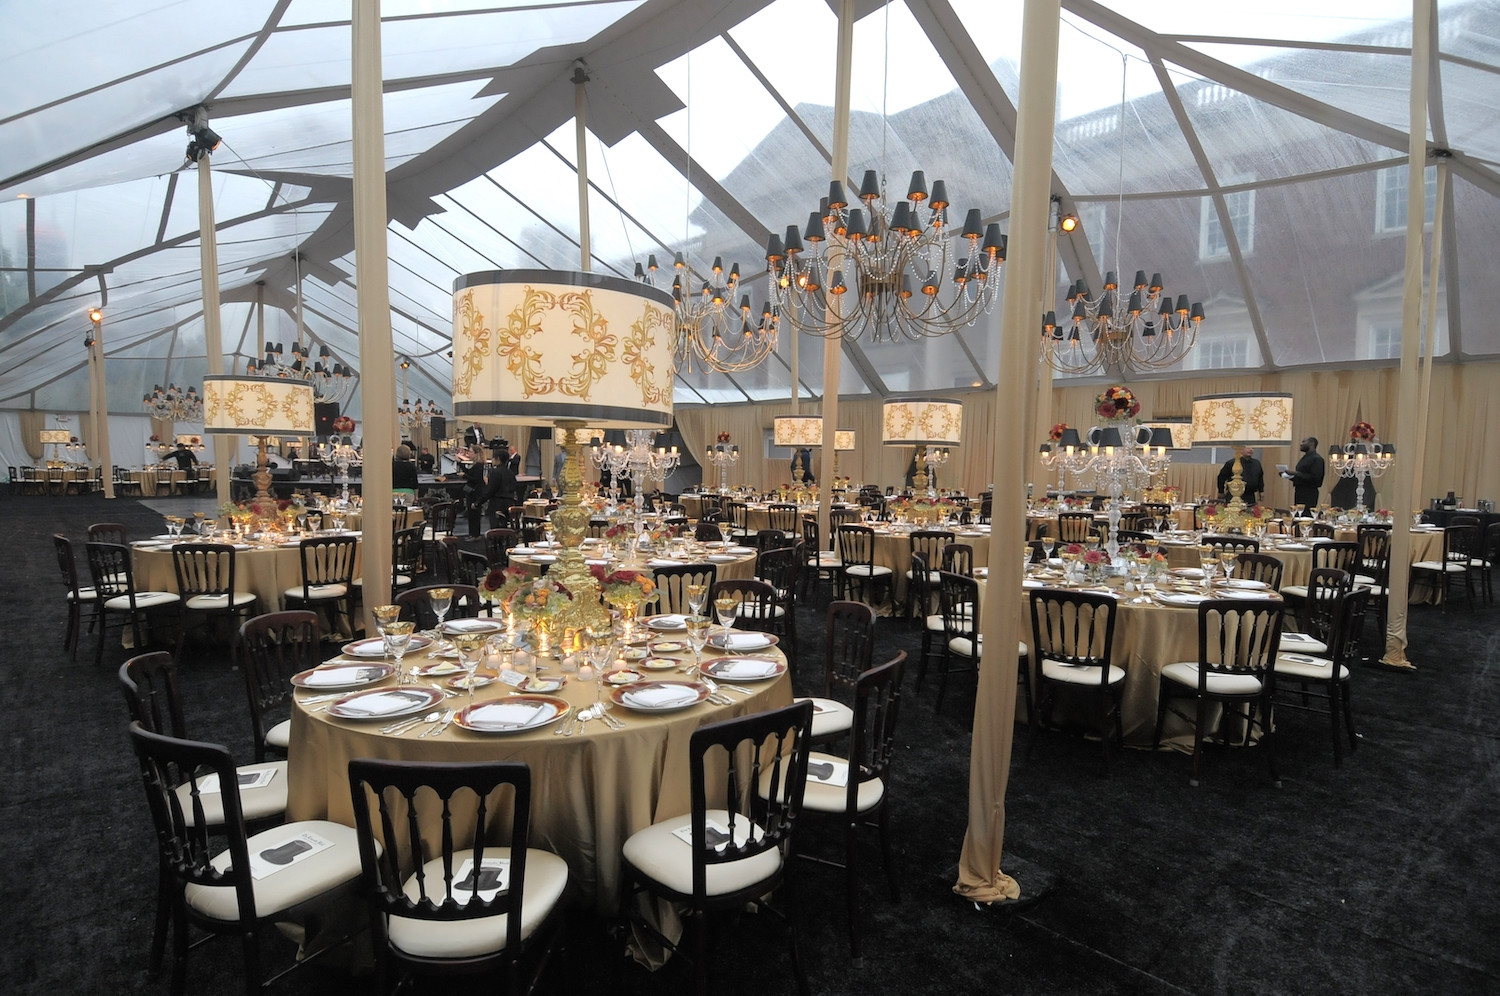 Tented Outdoor Plaza space